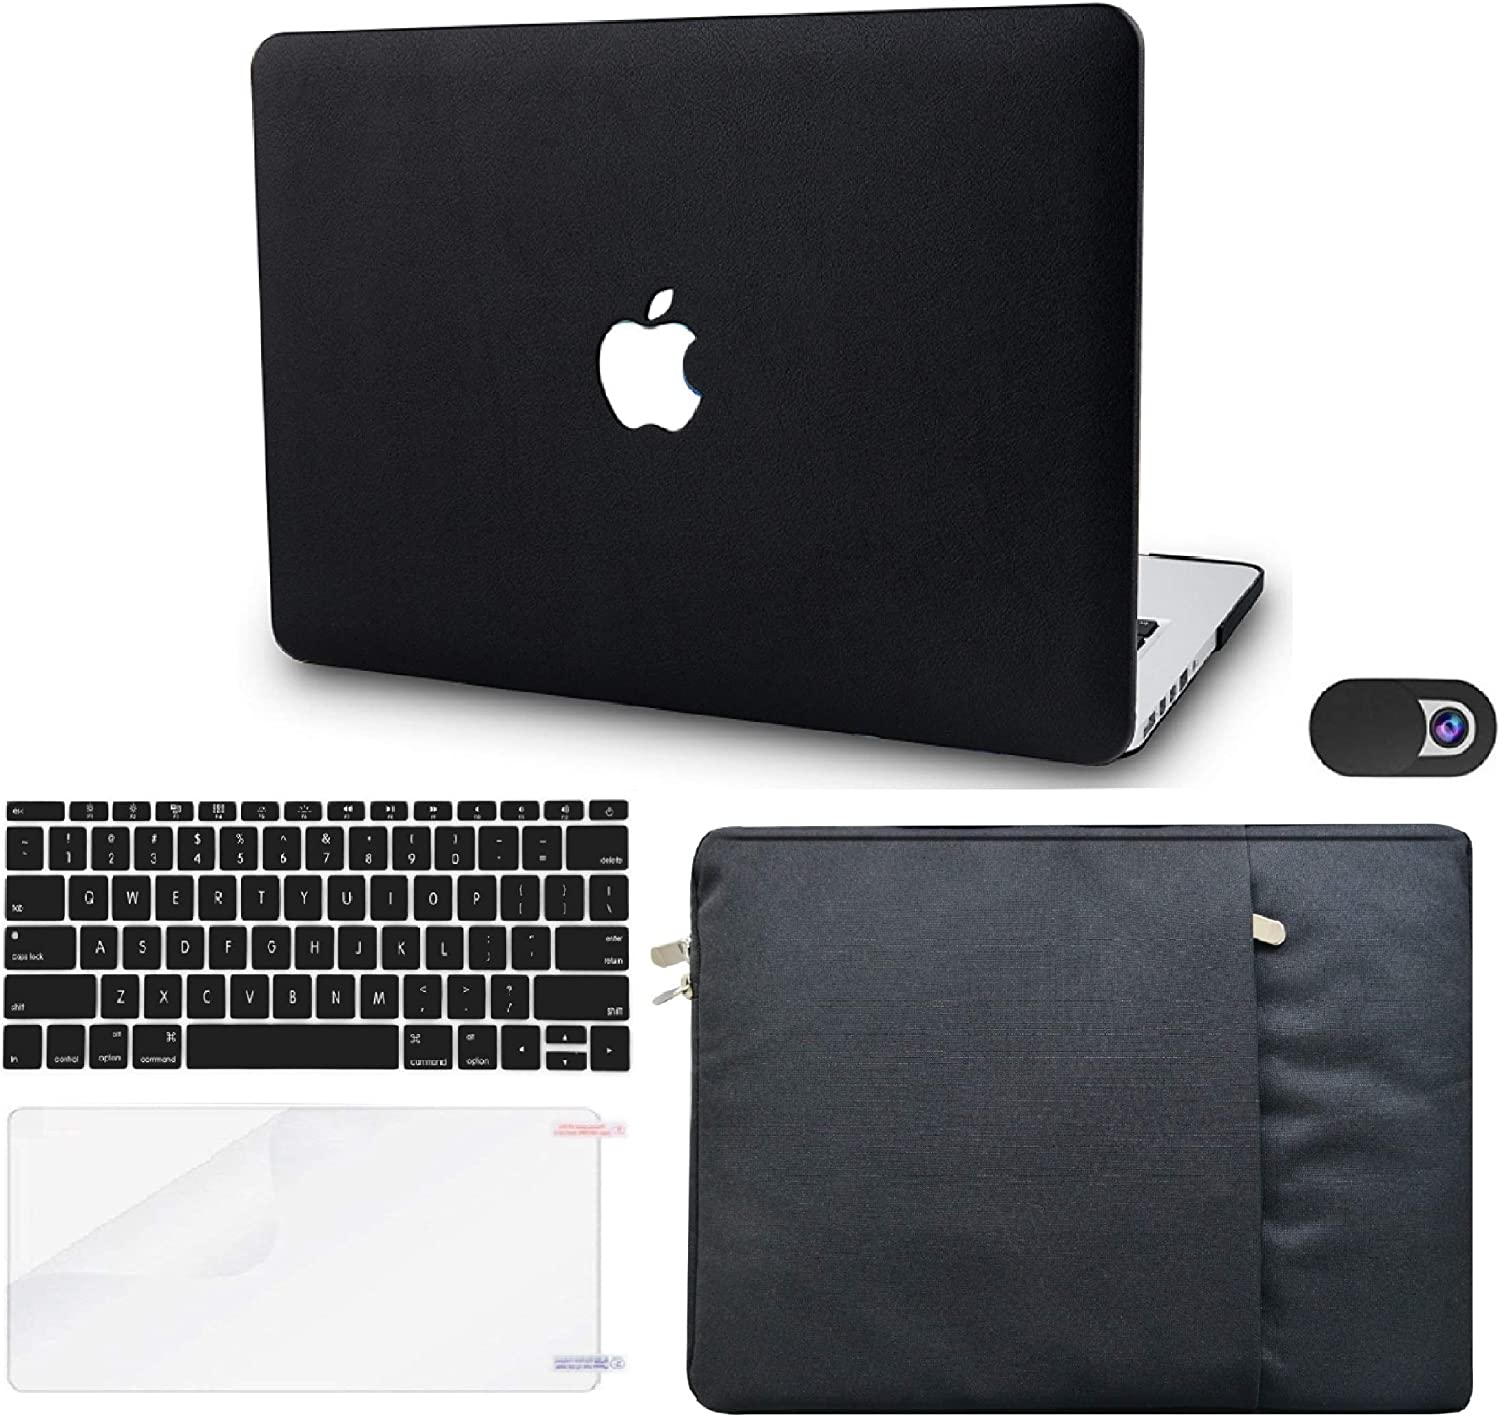 """KECC Laptop Case for MacBook Pro 13"""" (2020,Touch Bar) w/Keyboard Cover + Sleeve + Screen Protector + Webcam Cover (5 in 1) ltalian Leather A2289/A2251 (Black Leather)"""